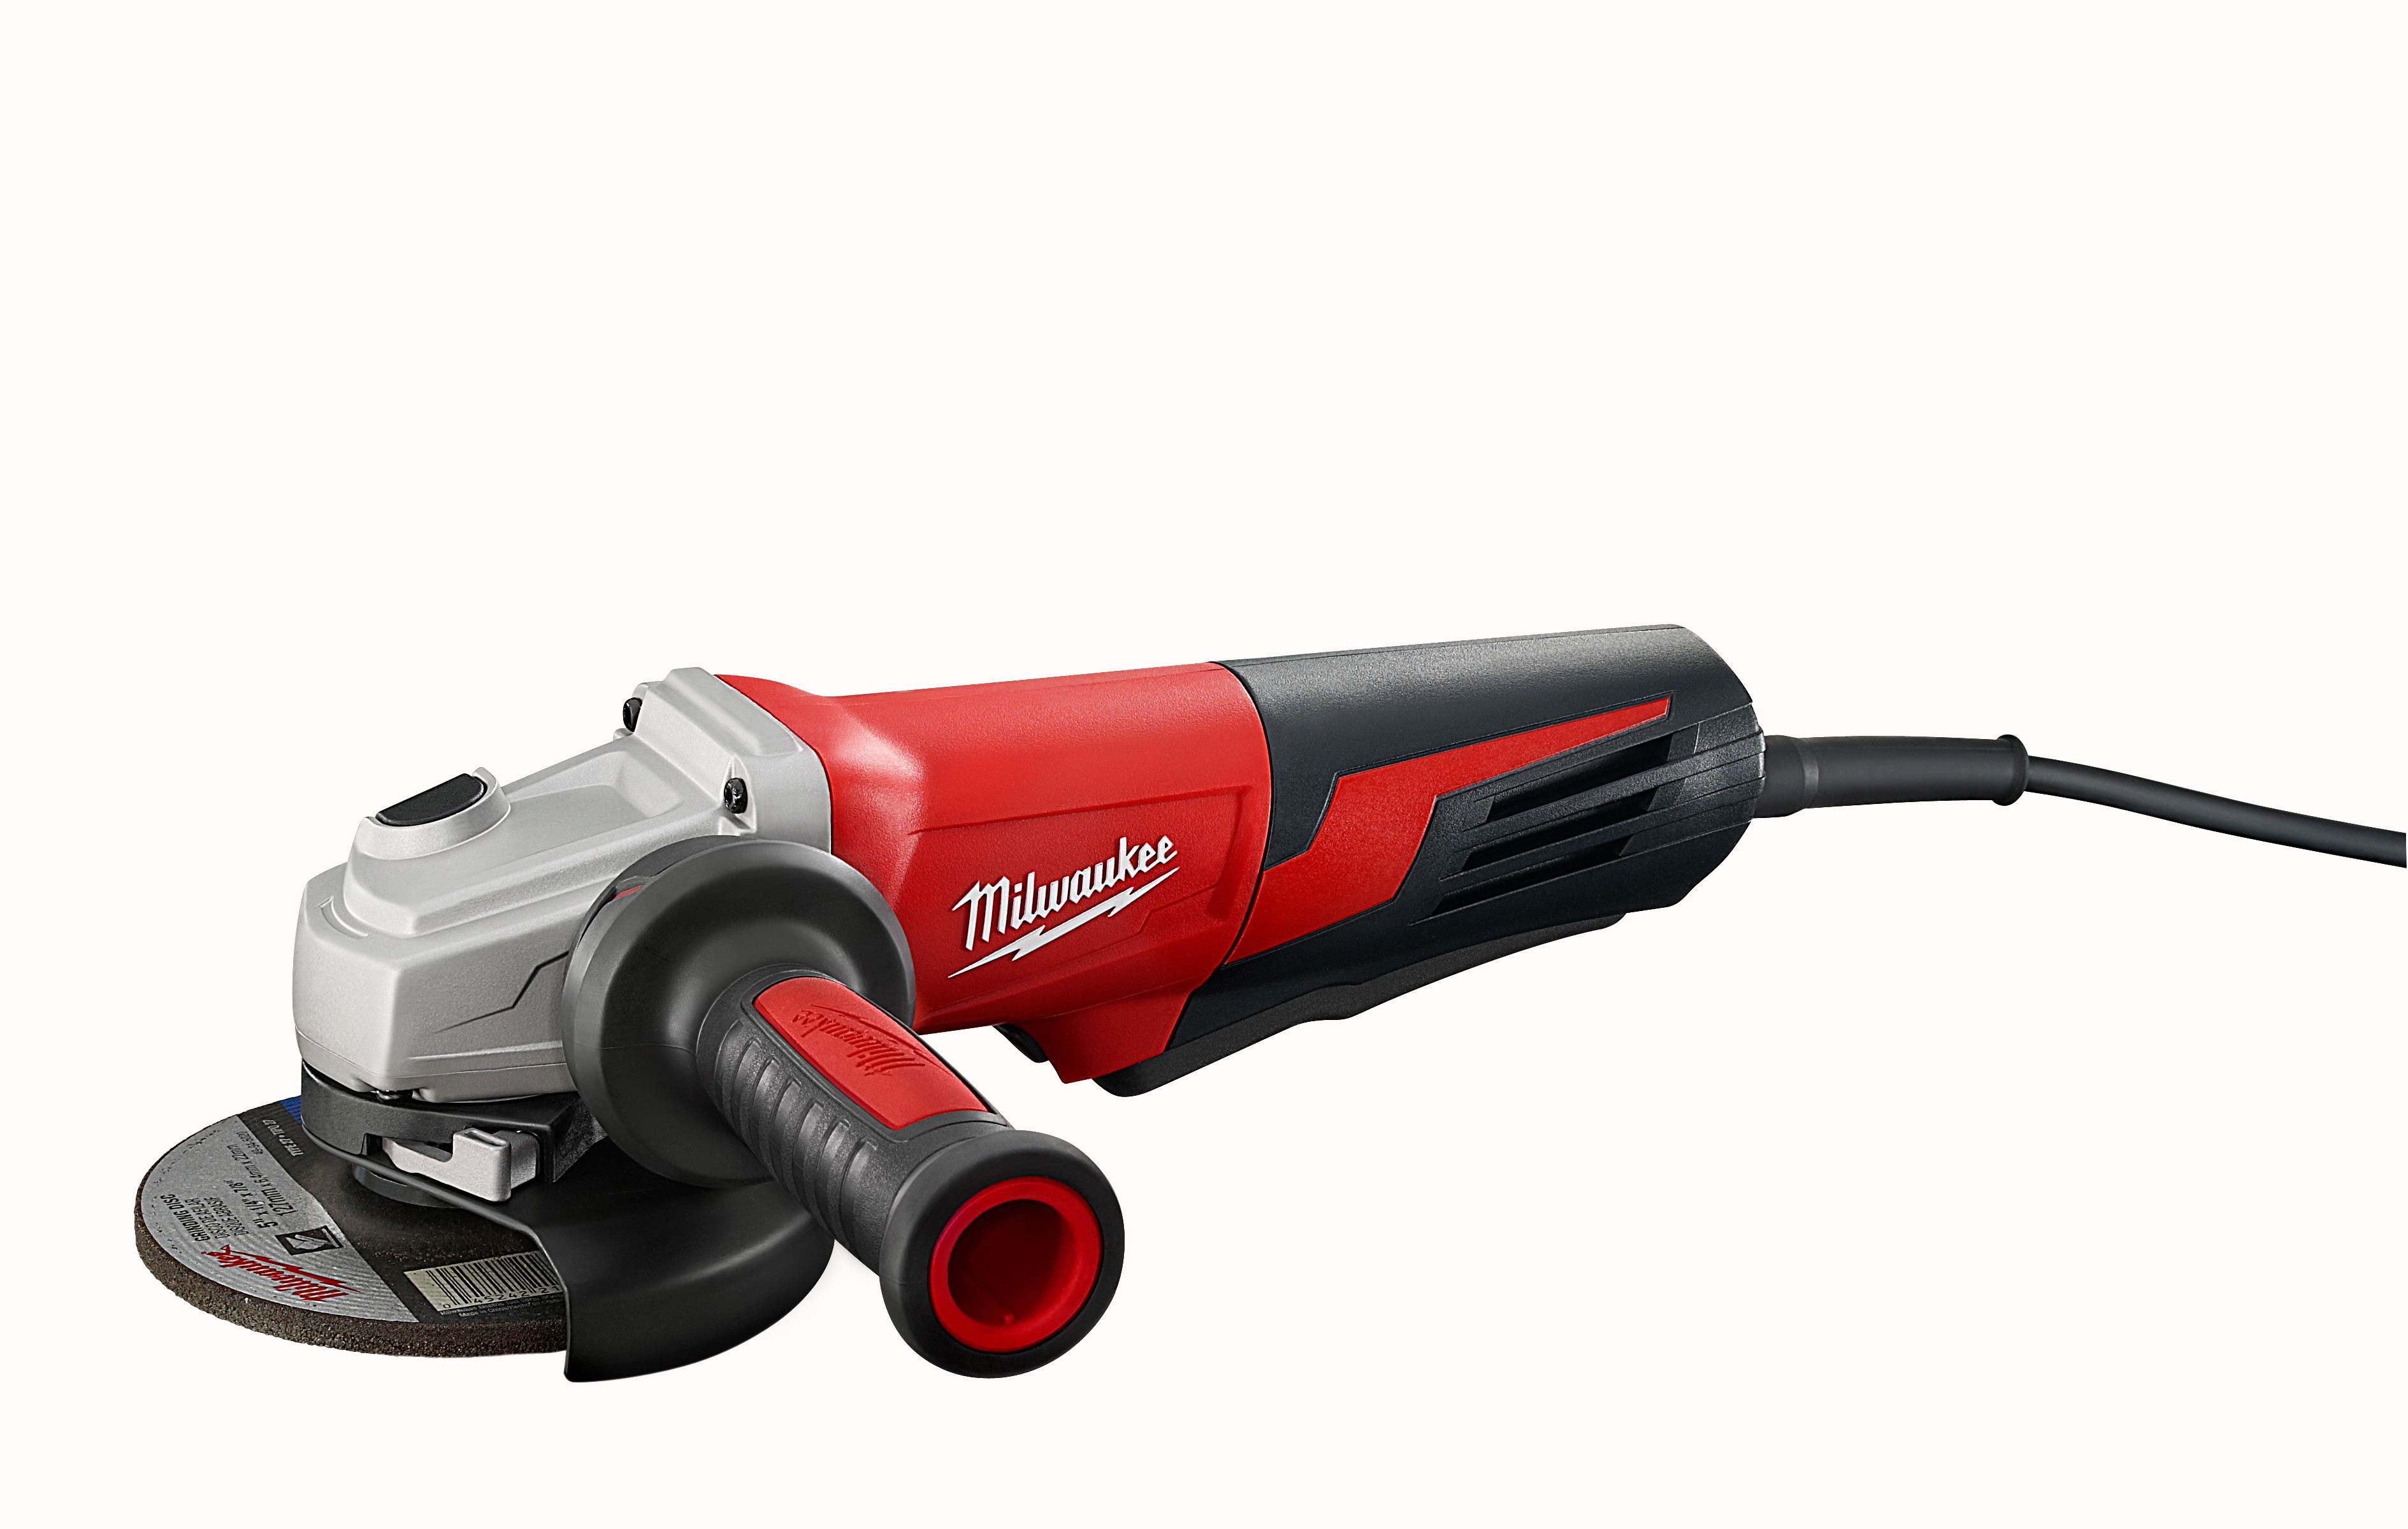 Milwaukee® 6117-30 Double Insulated Small Angle Grinder, 5 in Dia Wheel, 5/8-11 Arbor/Shank, 120 VAC, Black/Red